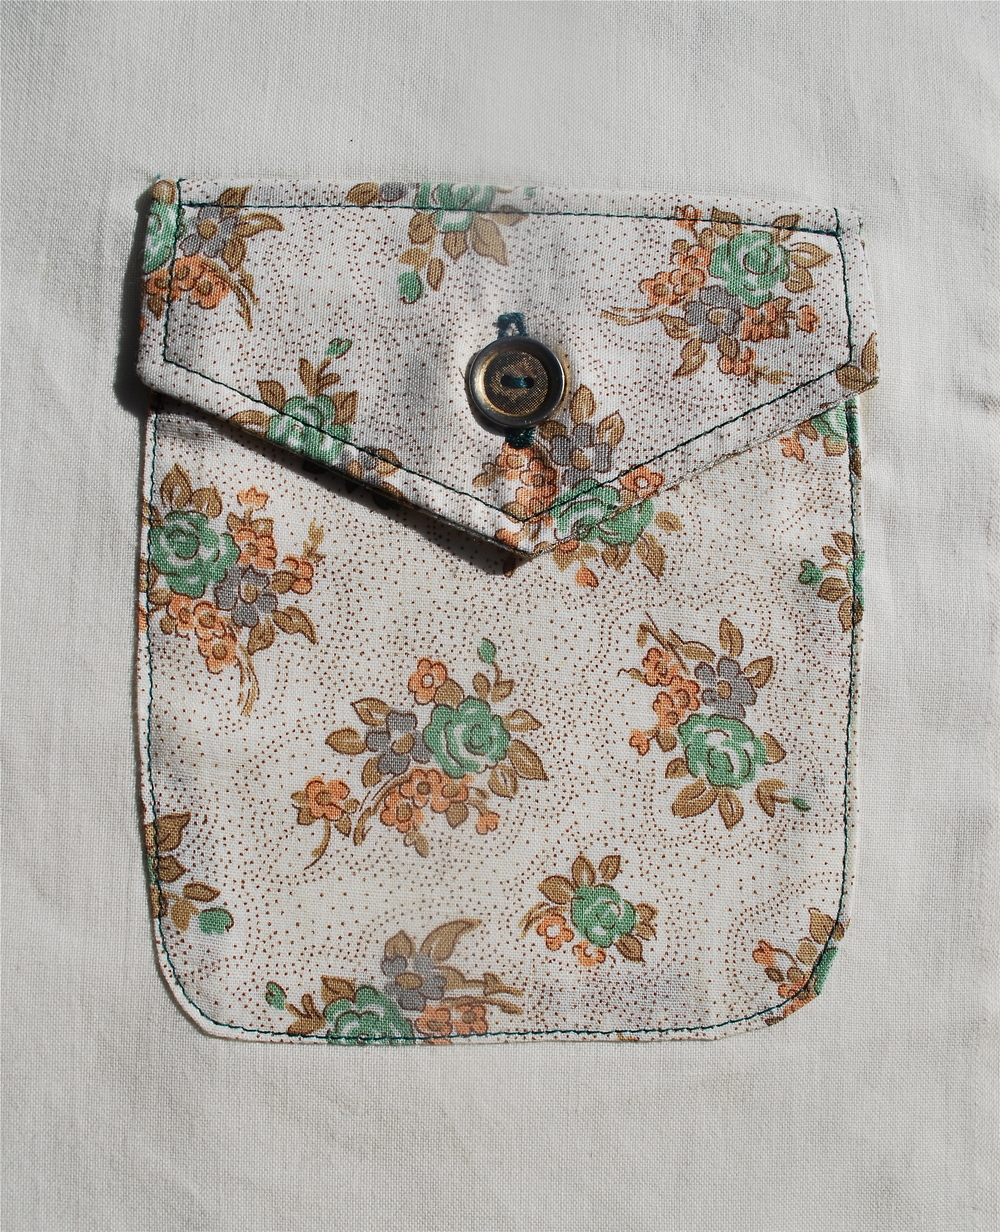 A patch pocket with a flap, a button and rounded corners. This one is from the Colette Negroni pattern.